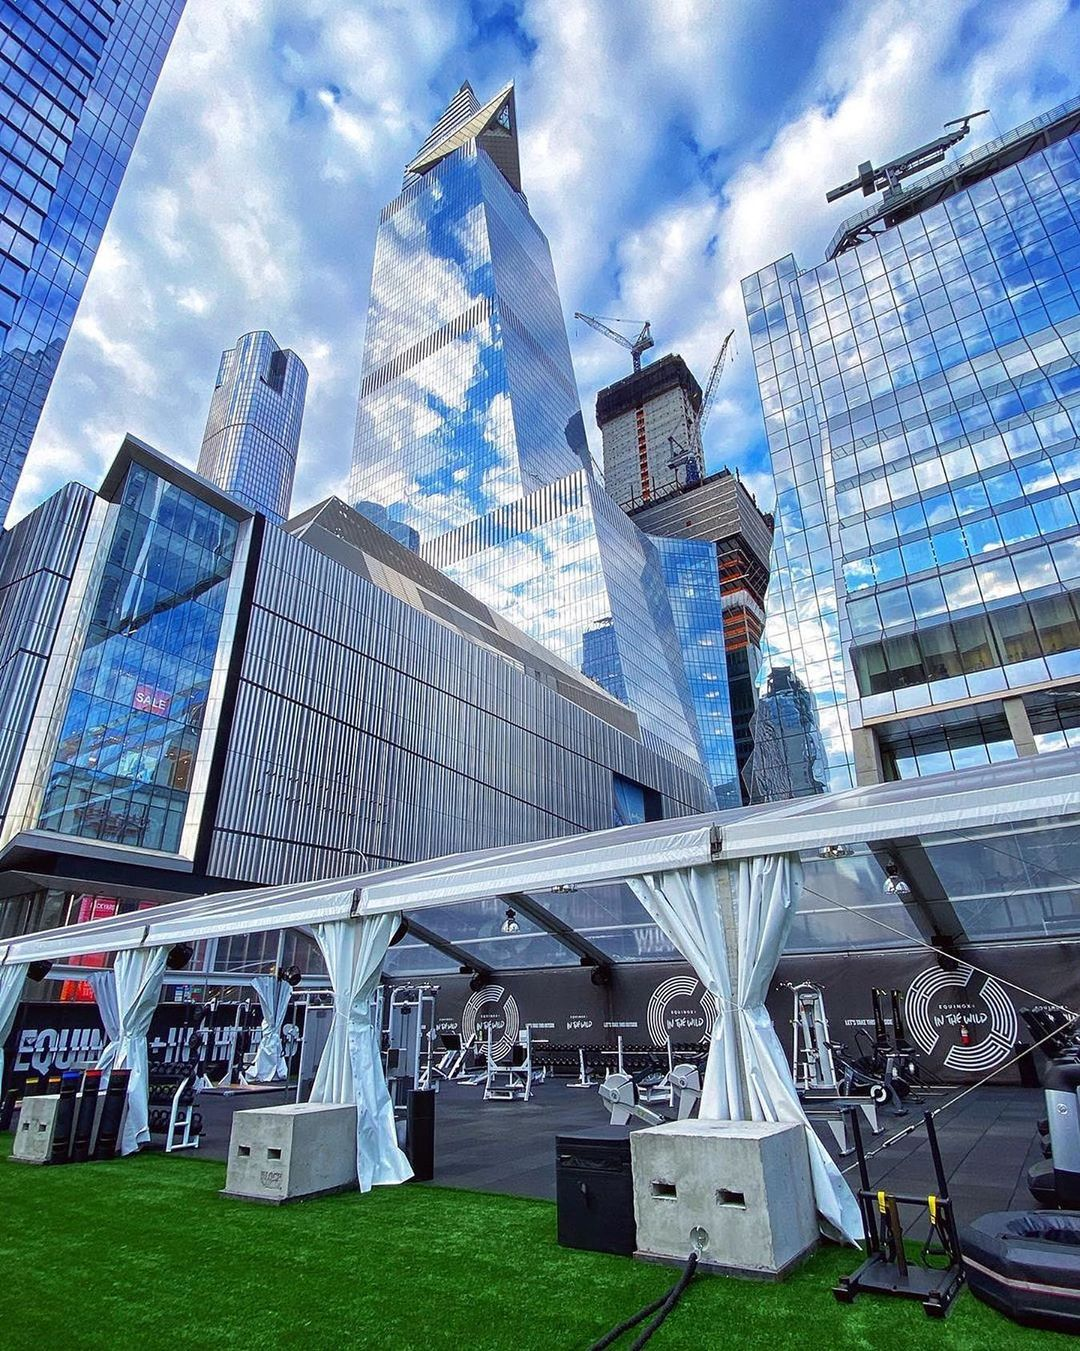 <equinox in the wild outdoor gym featuring skyline view of hudson yards